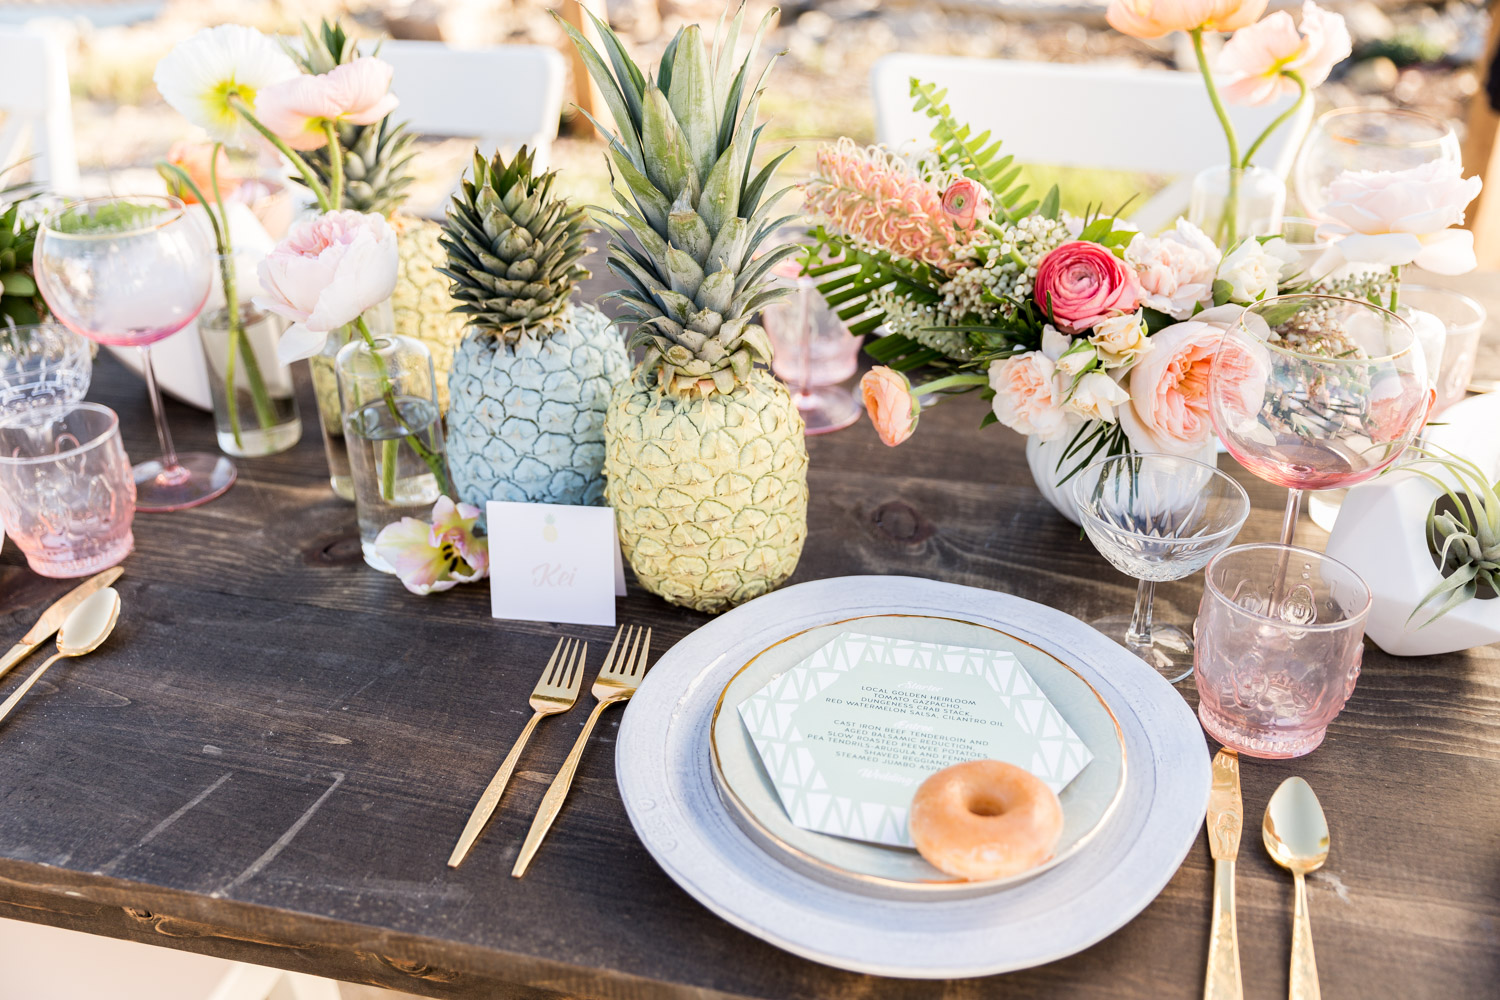 Tropical private estate wedding in San Diego by Couture Events, Air plants and pink and white flowers on a dark farm table with pineapples